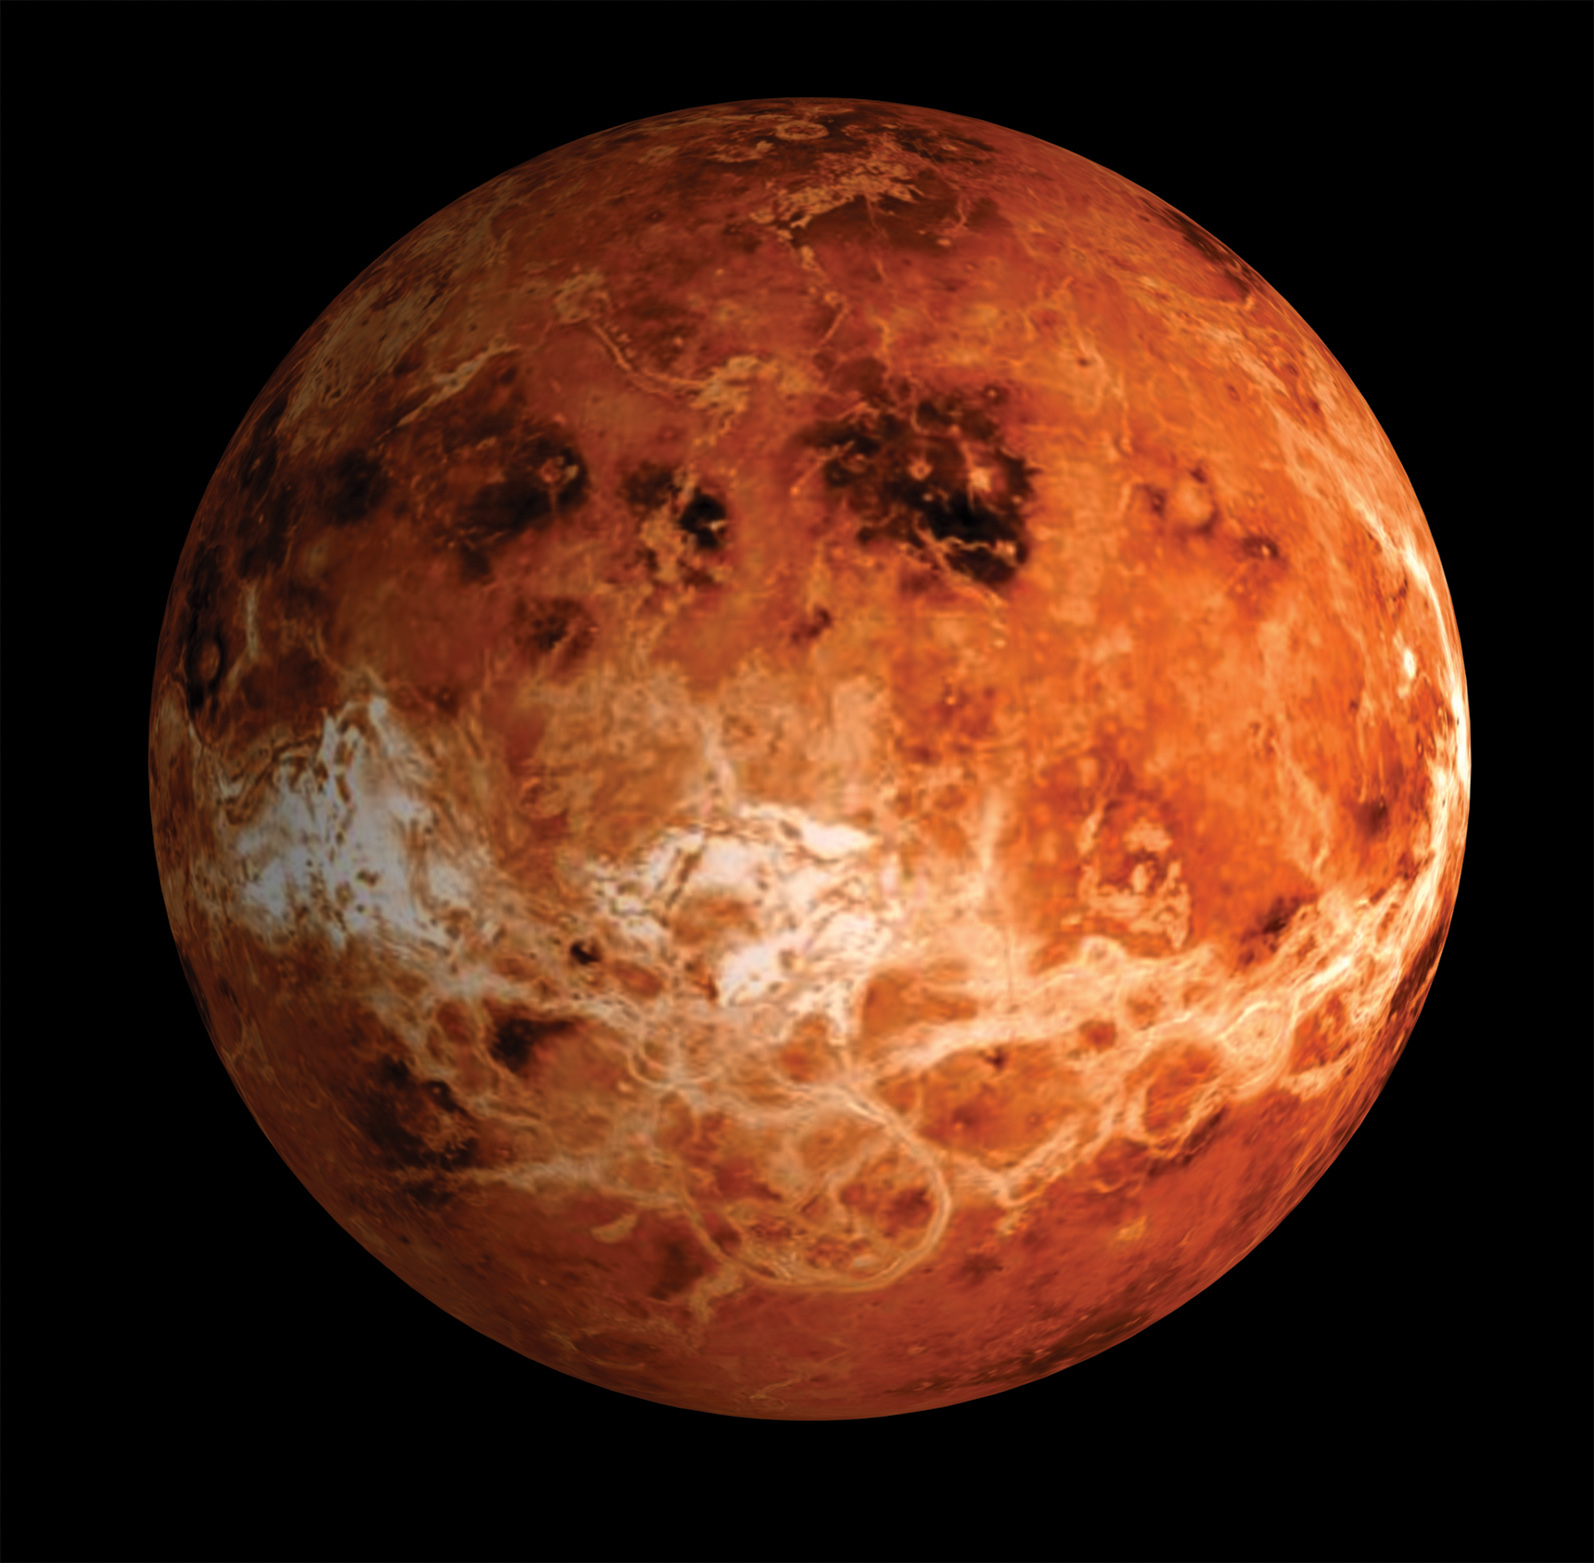 Venus Mars A Venus Planet Hd Wallpaper Pics About Space